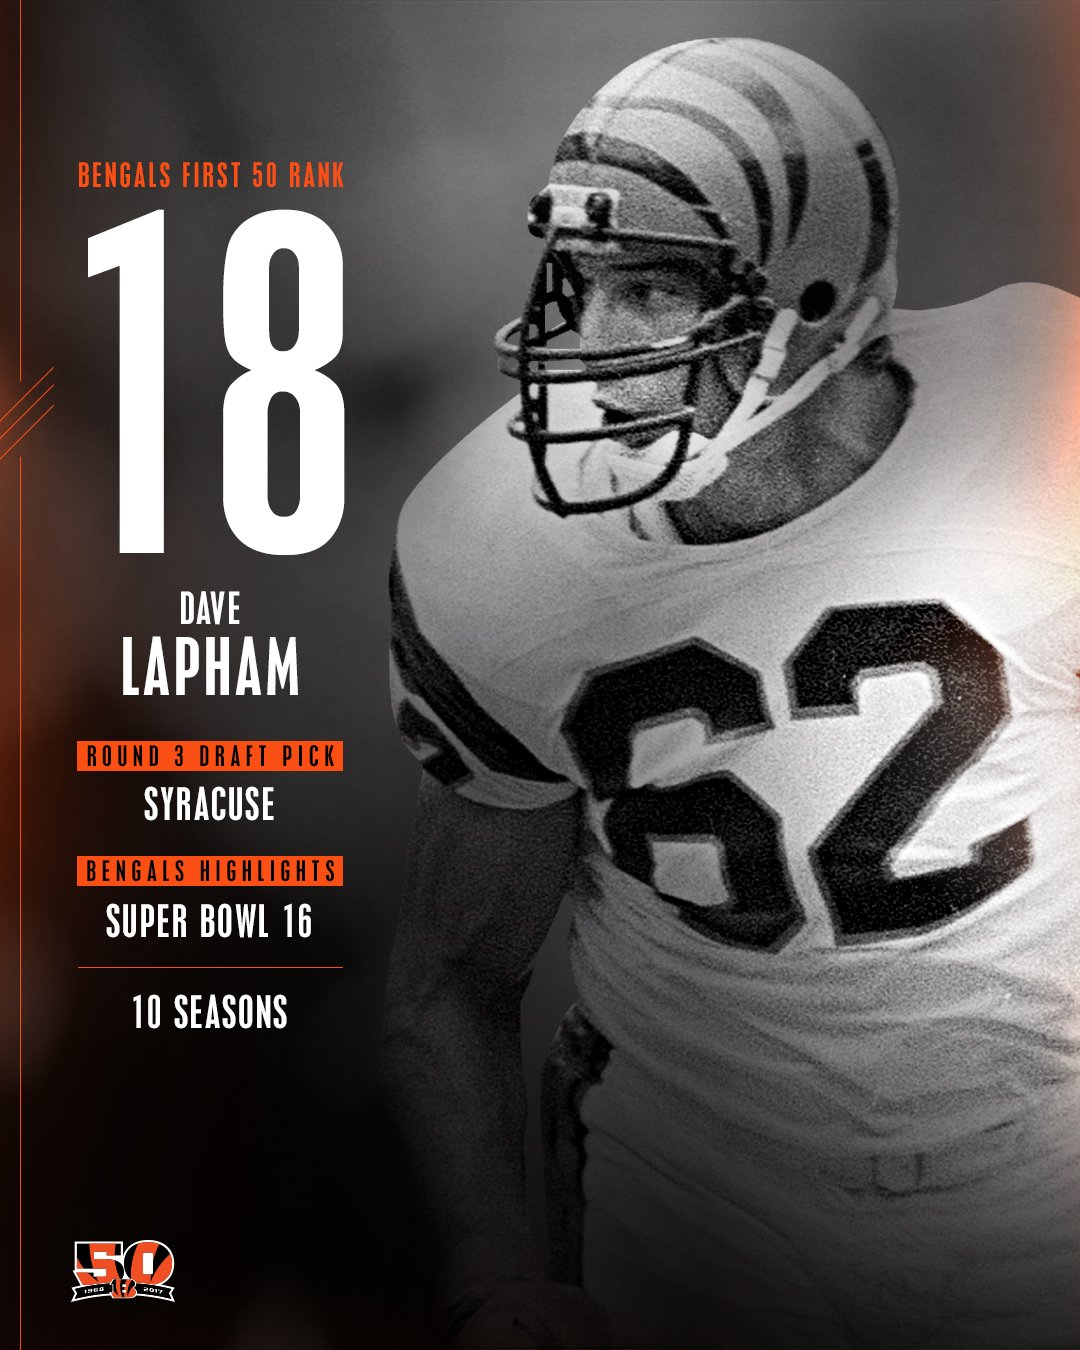 18 days from today: Ravens at Bengals  Number 18 on the #Bengals First 50: Dave Lapham  #Bengals50 https://t.co/yKVnazVcev